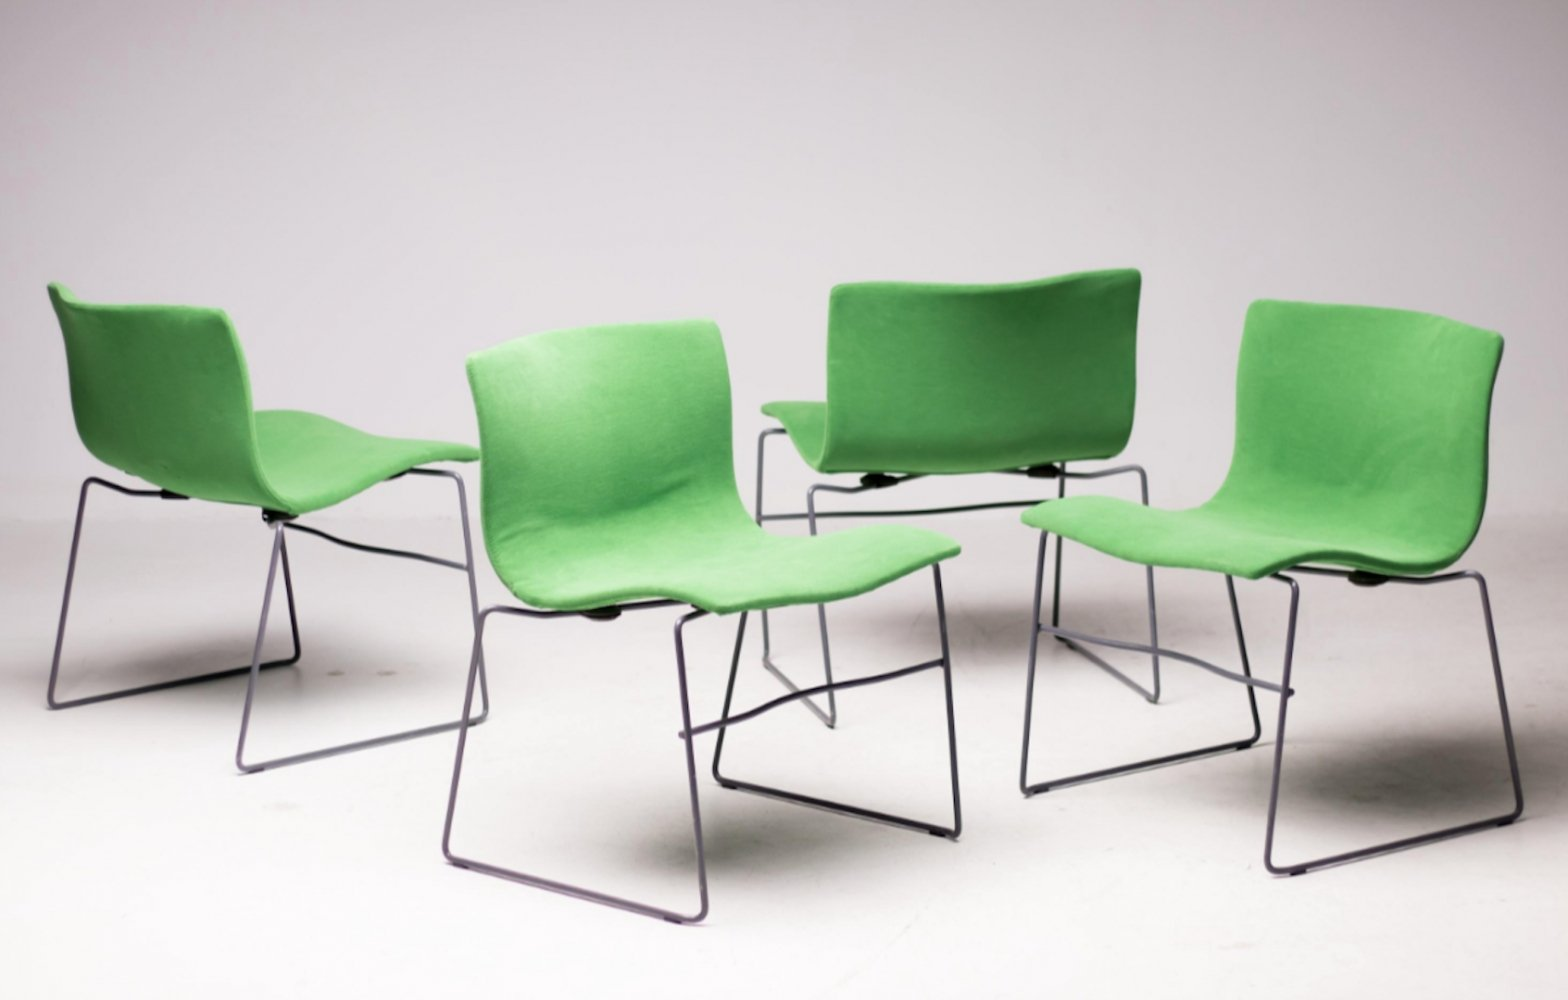 Set of 4 Handkerchief dining chairs by Lella Vignelli & Massimo Vignelli for Knoll, 1980s